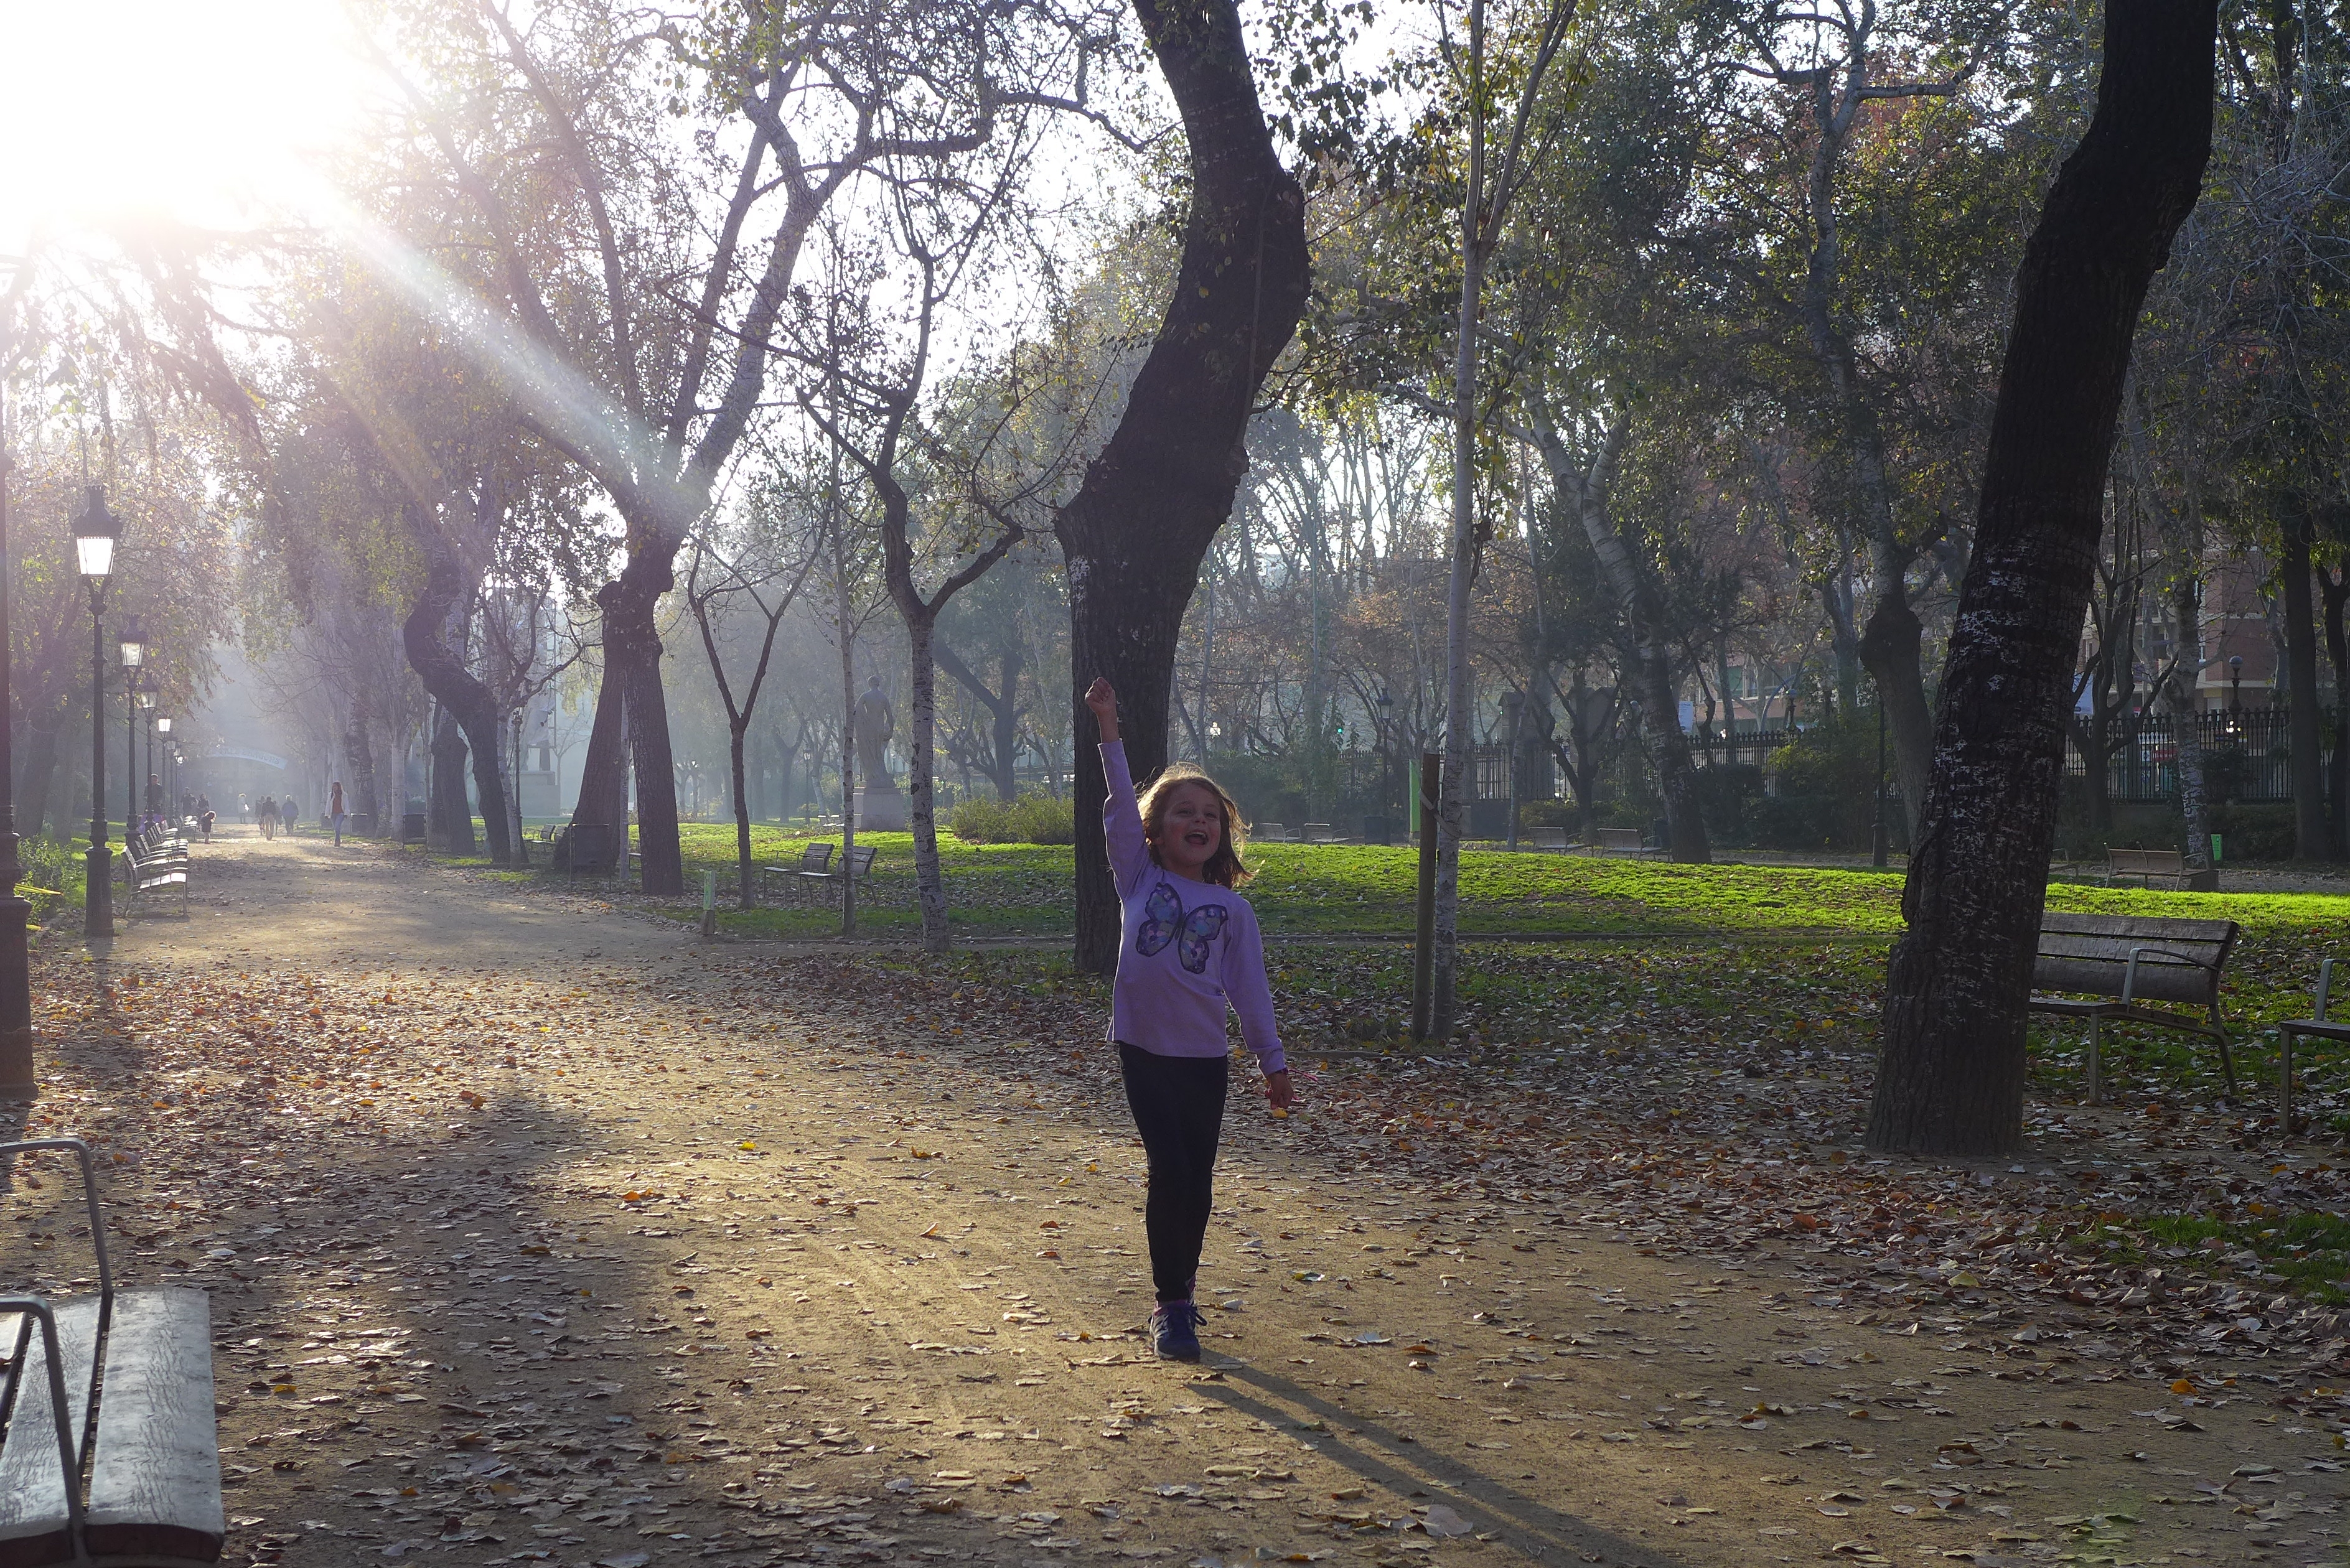 Quinn running through a park with her hand in the air